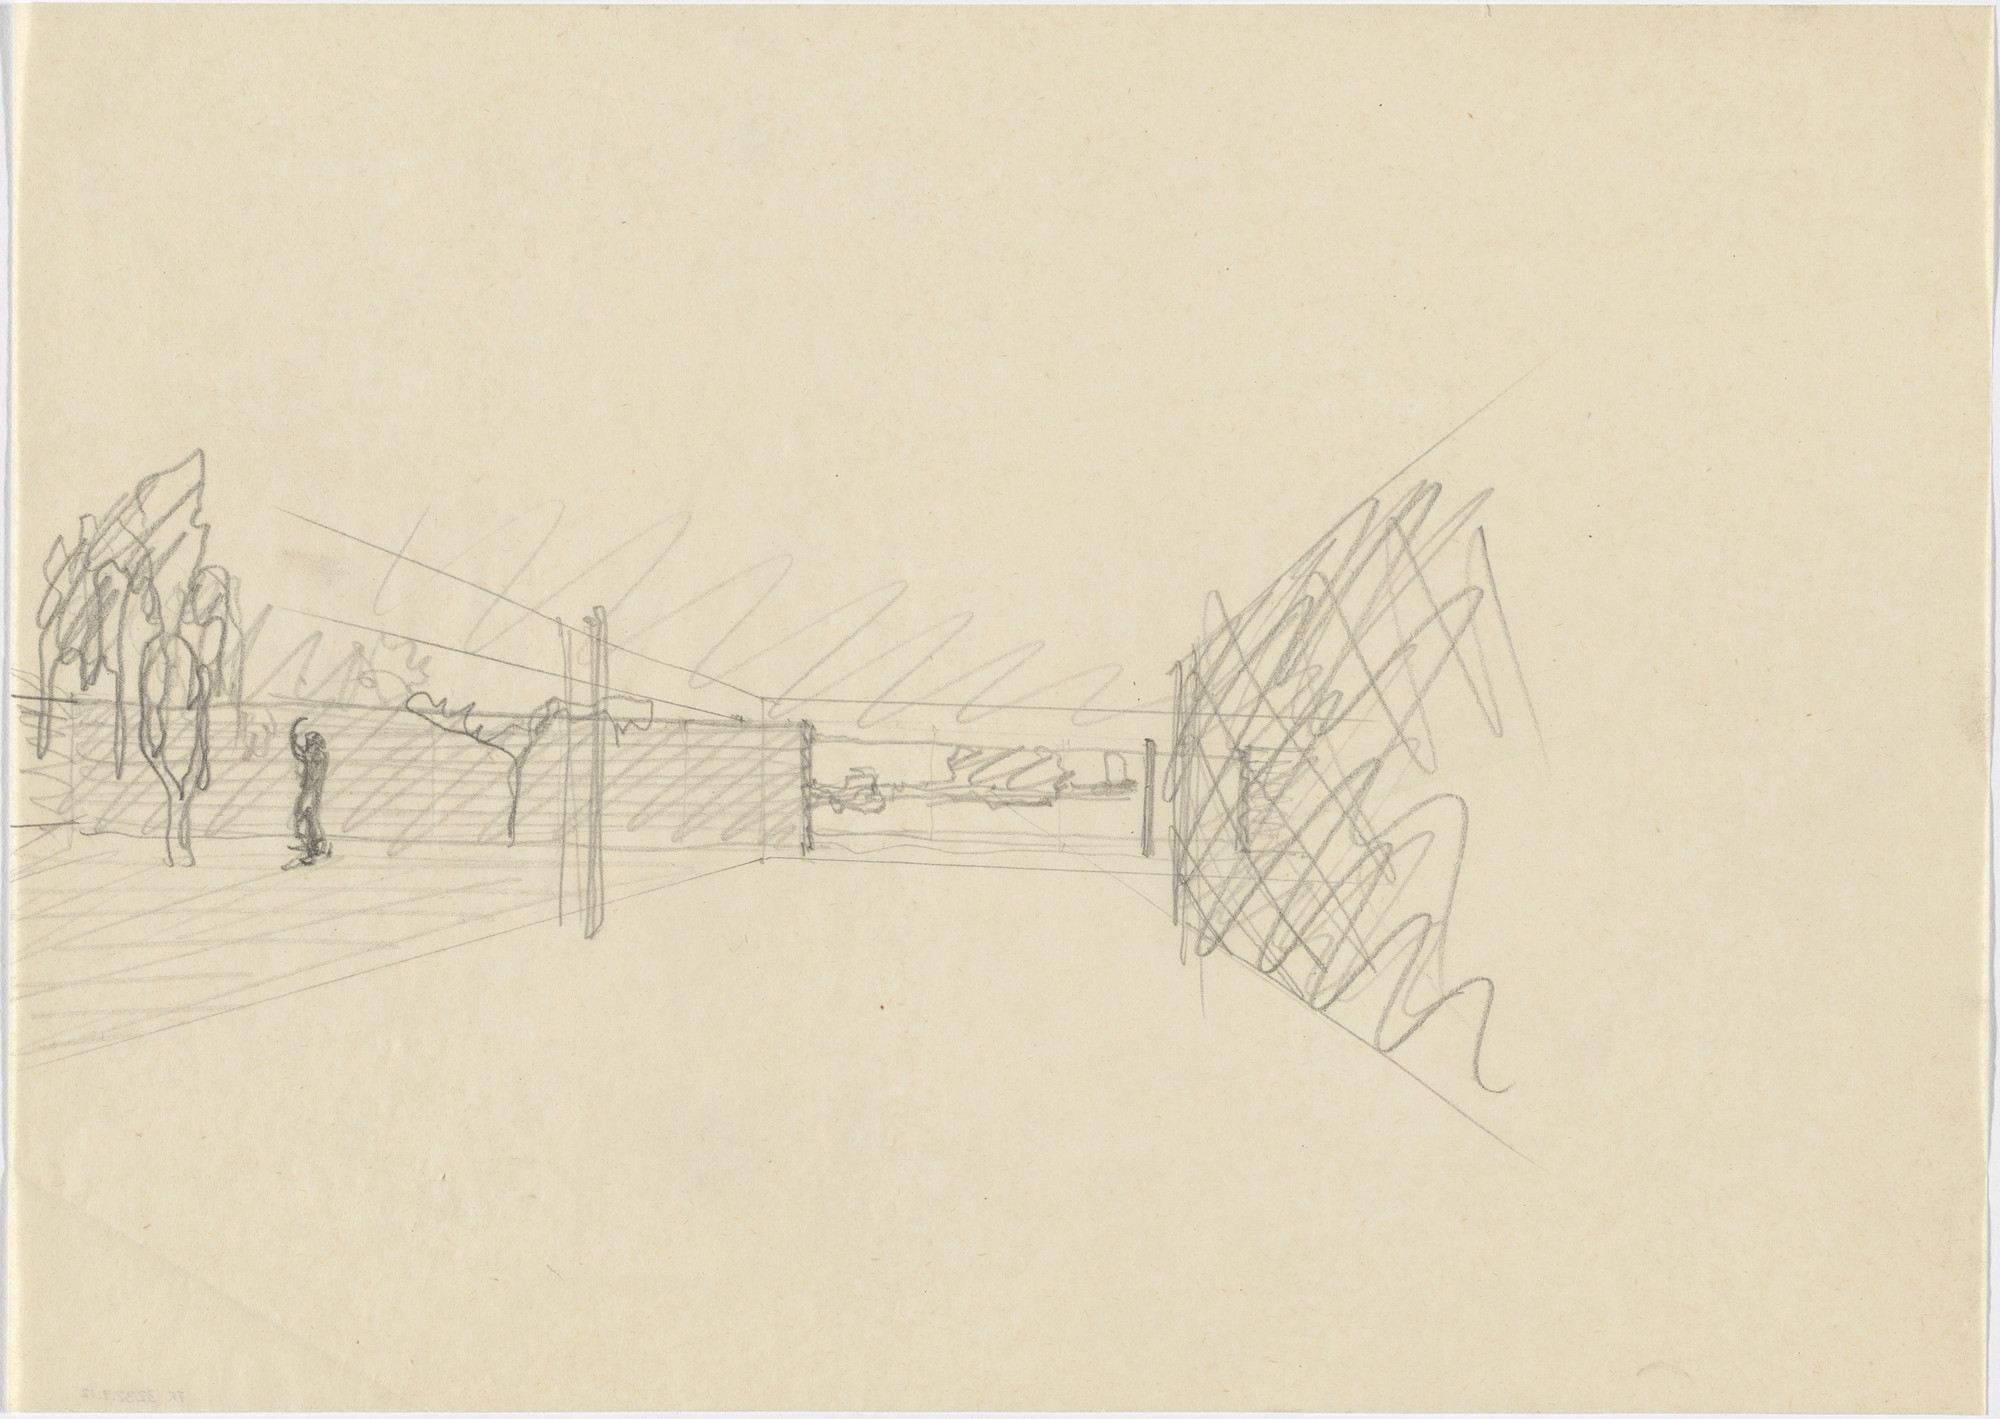 Ludwig Mies van der Rohe. Ulrich Lange House Project, Krefeld, Germany (Perspective sketch). 1935